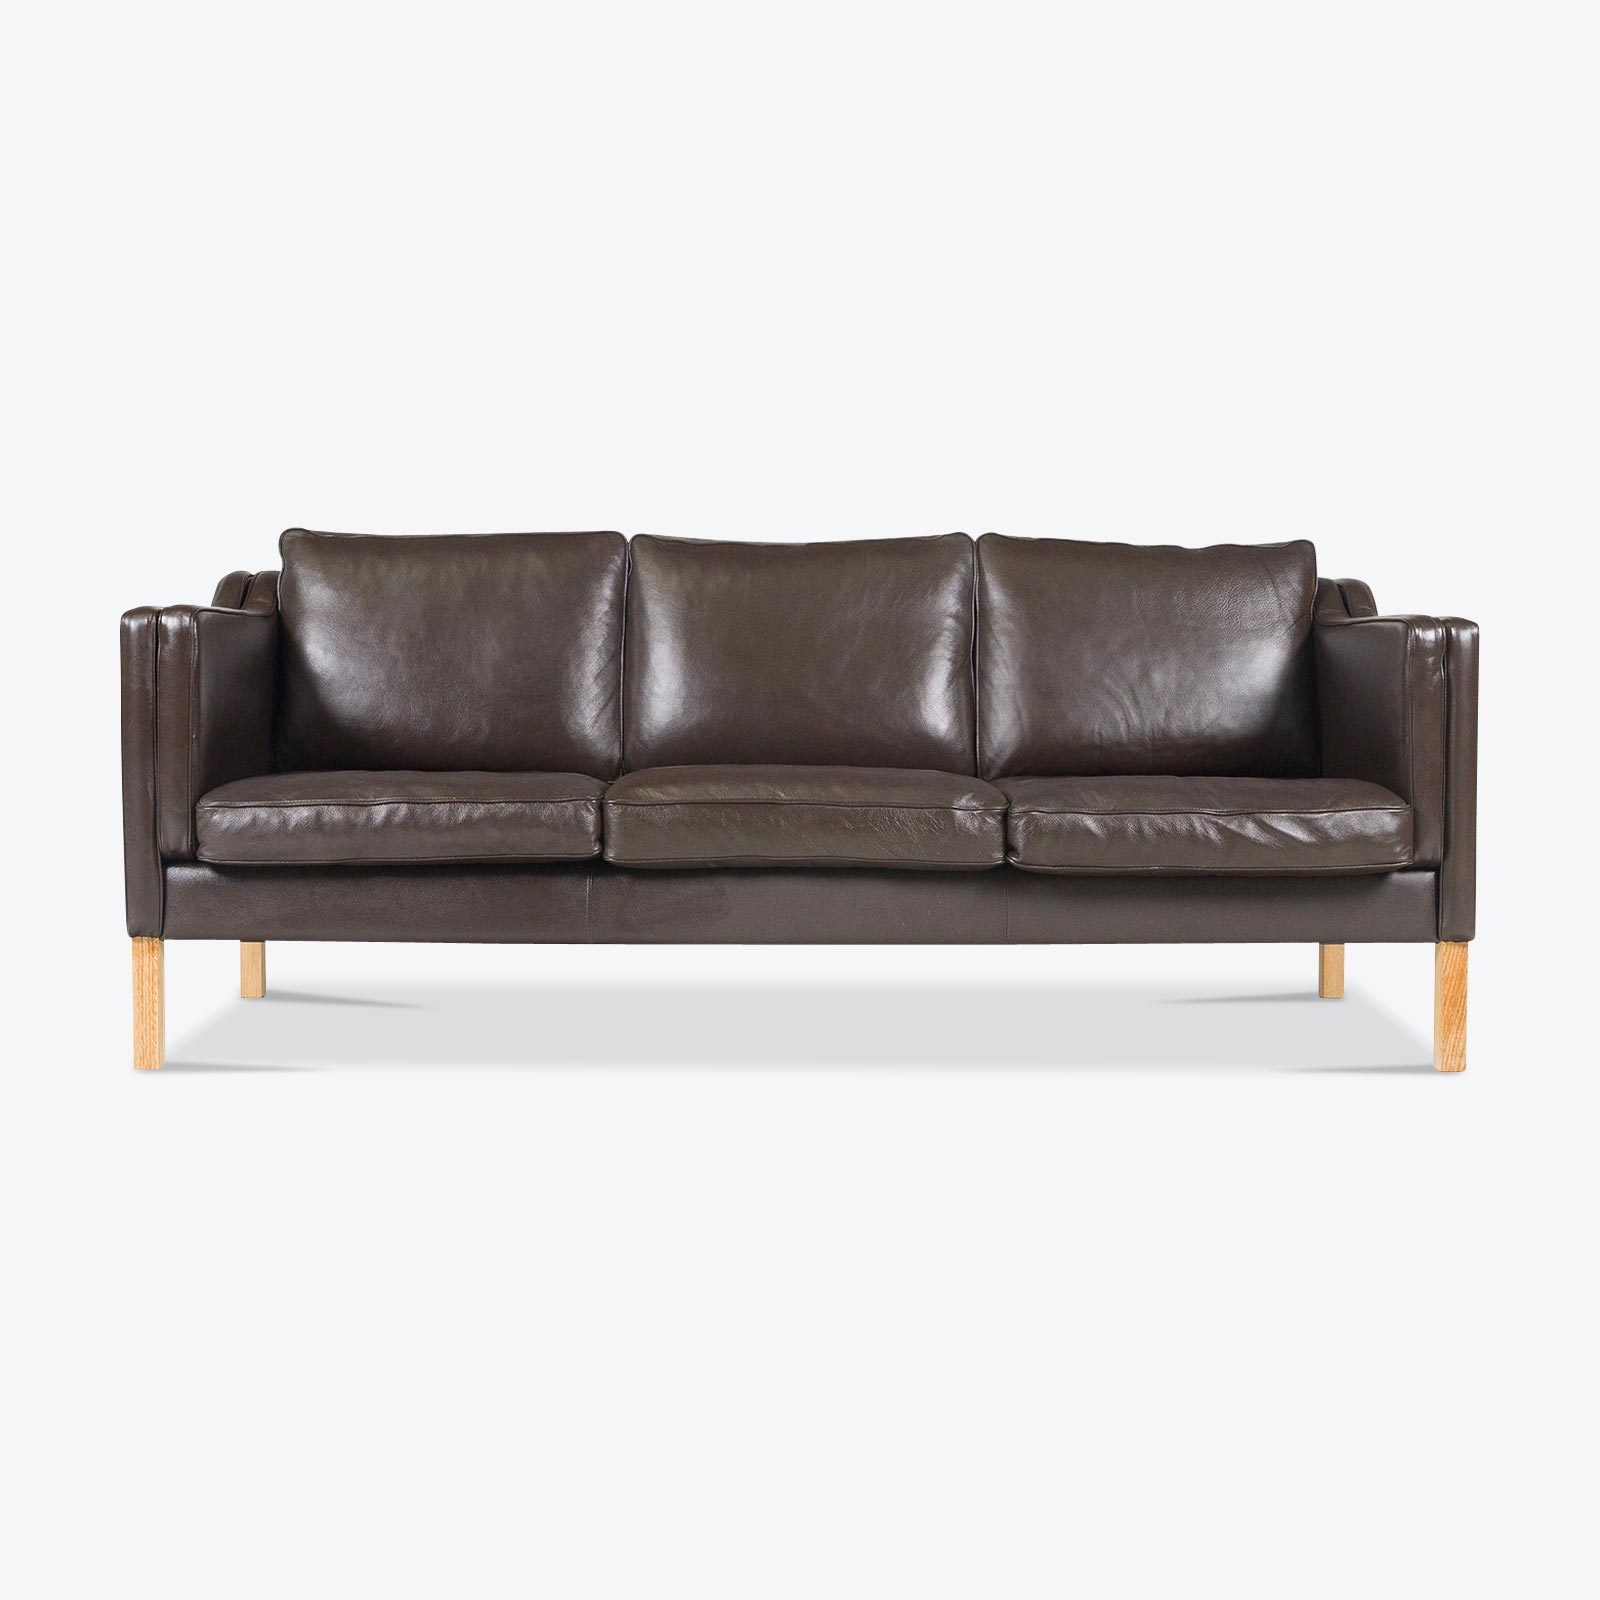 brown leather sofa on legs jennifer convertible bed reviews 3 seat in mocha and oak 1960s